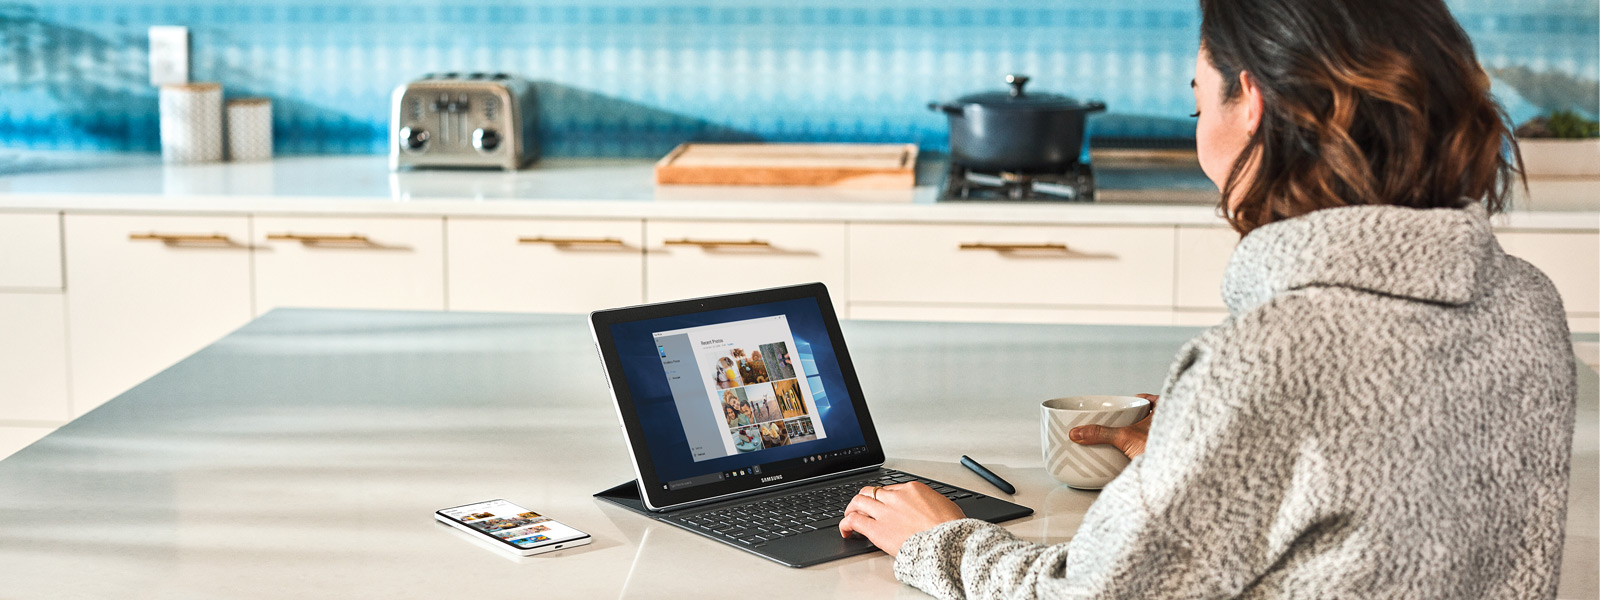 Woman seated at kitchen counter and using Windows 10 laptop computer with her mobile phone